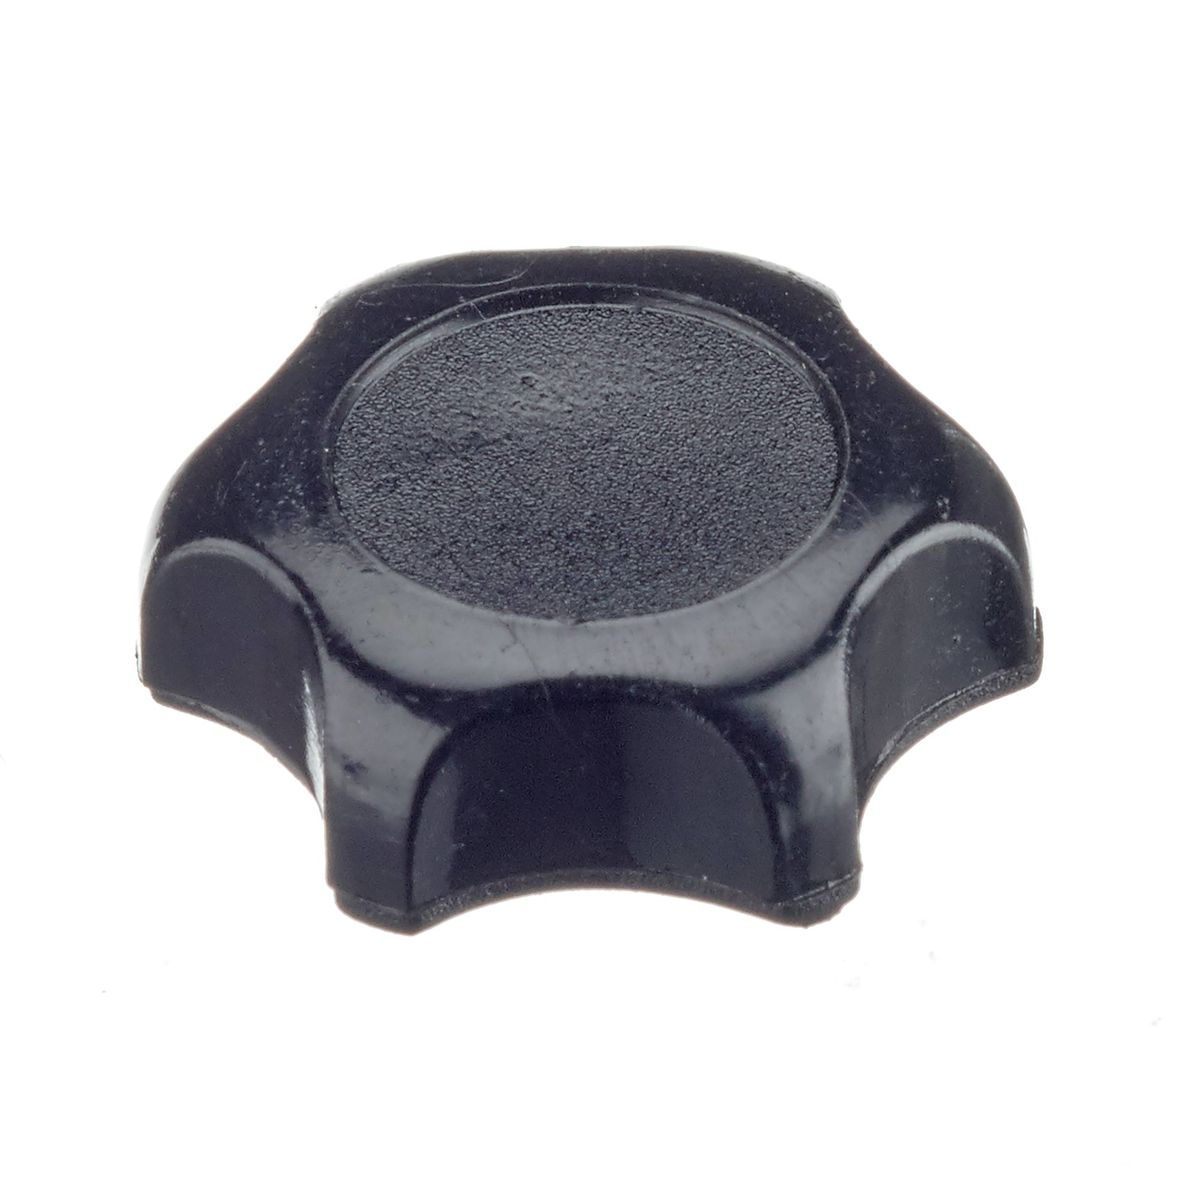 Xtreme knurled nut for X-Stand II assembly stand   Stands